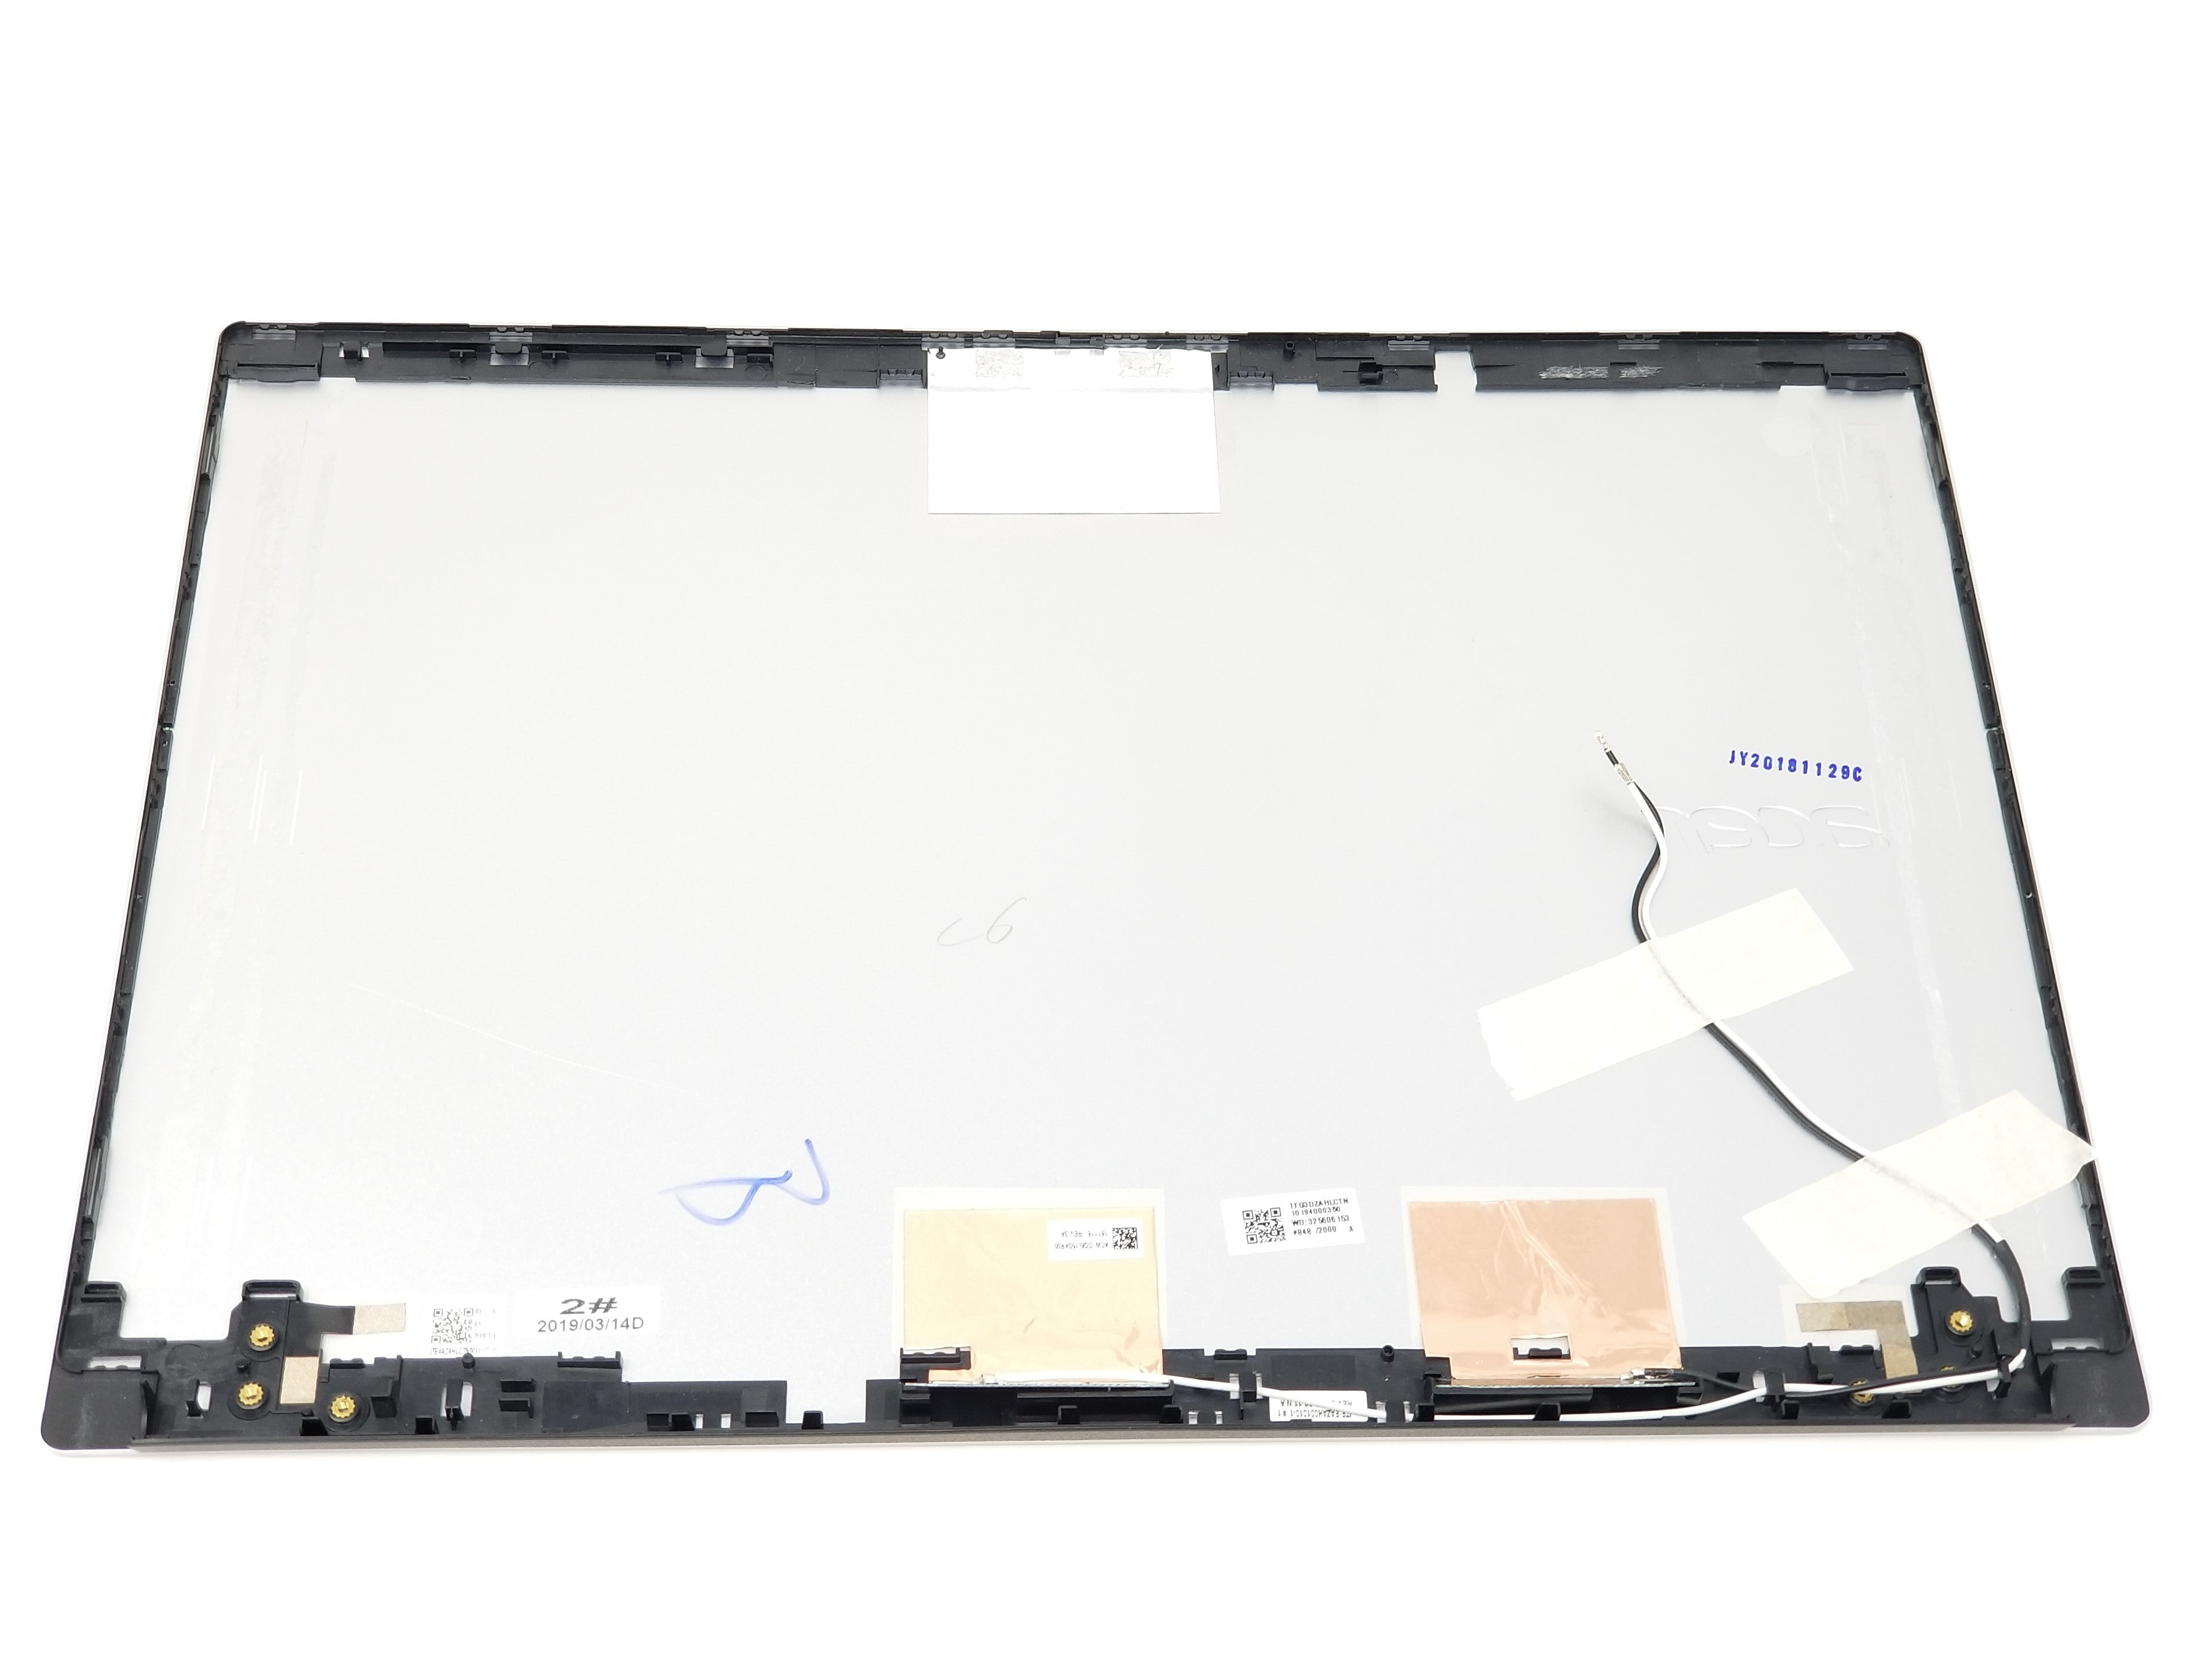 Acer Chromebook 14 CB514-1H LCD Back Cover (Silver) w/Antenna - 60.H1LN7.002